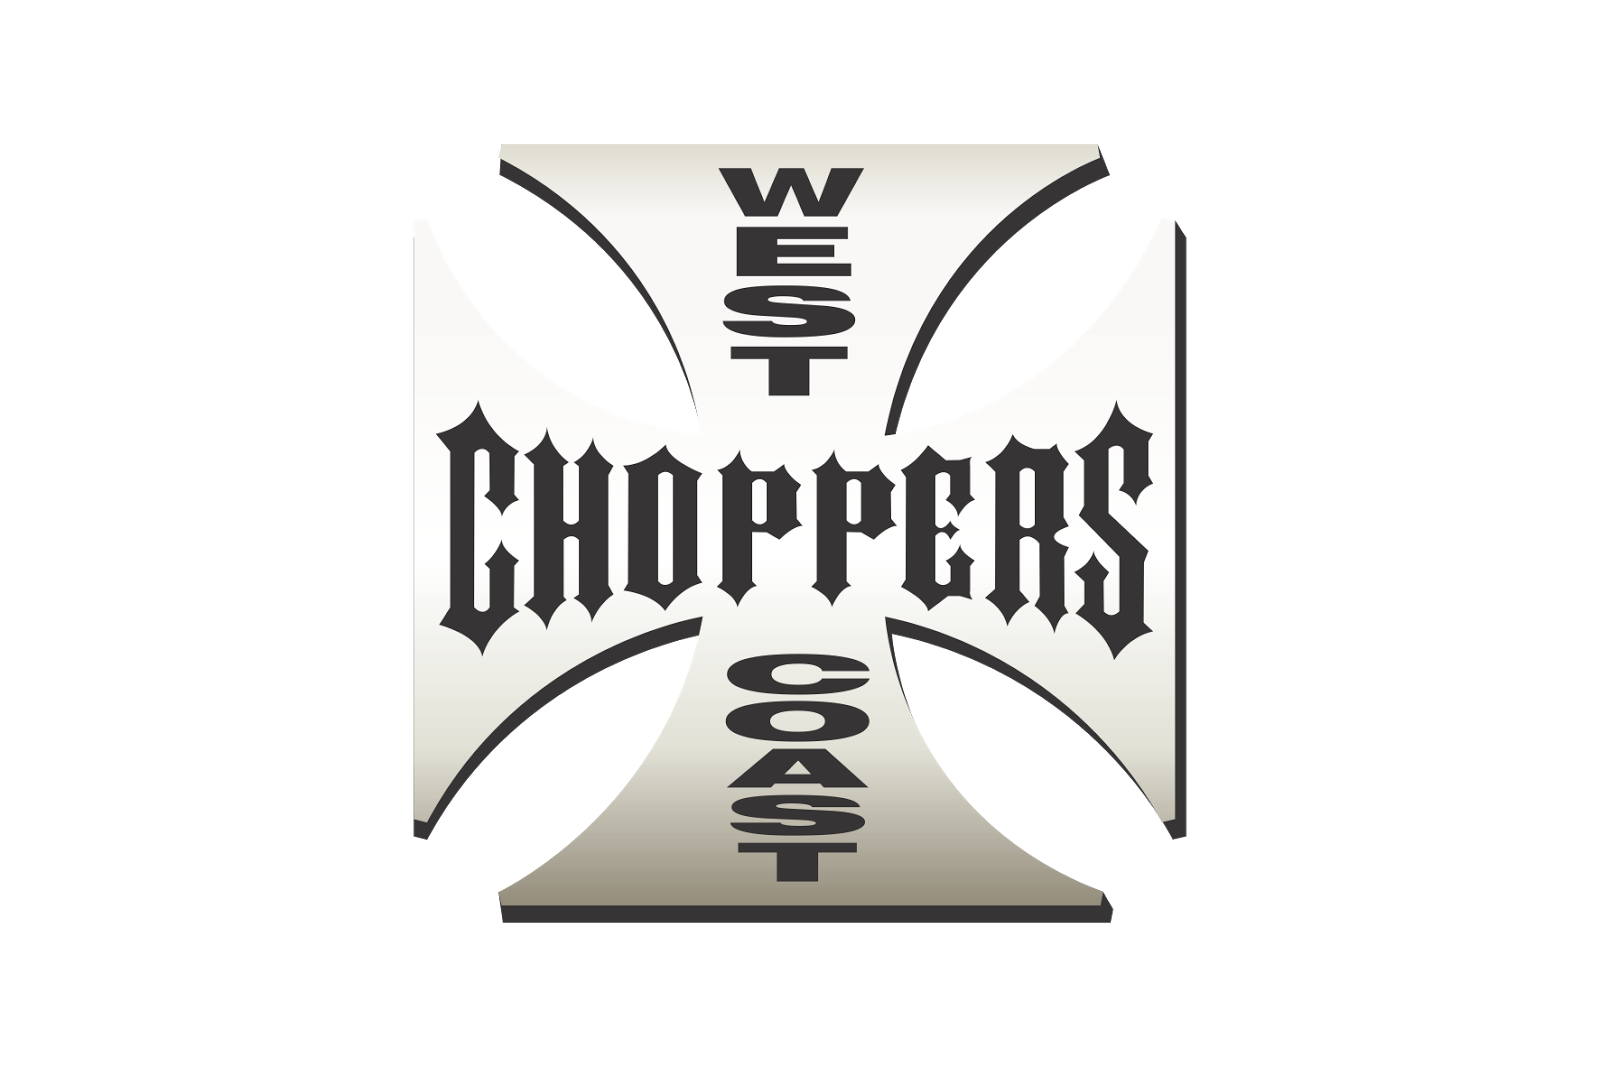 west coast choppers logo. Black Bedroom Furniture Sets. Home Design Ideas